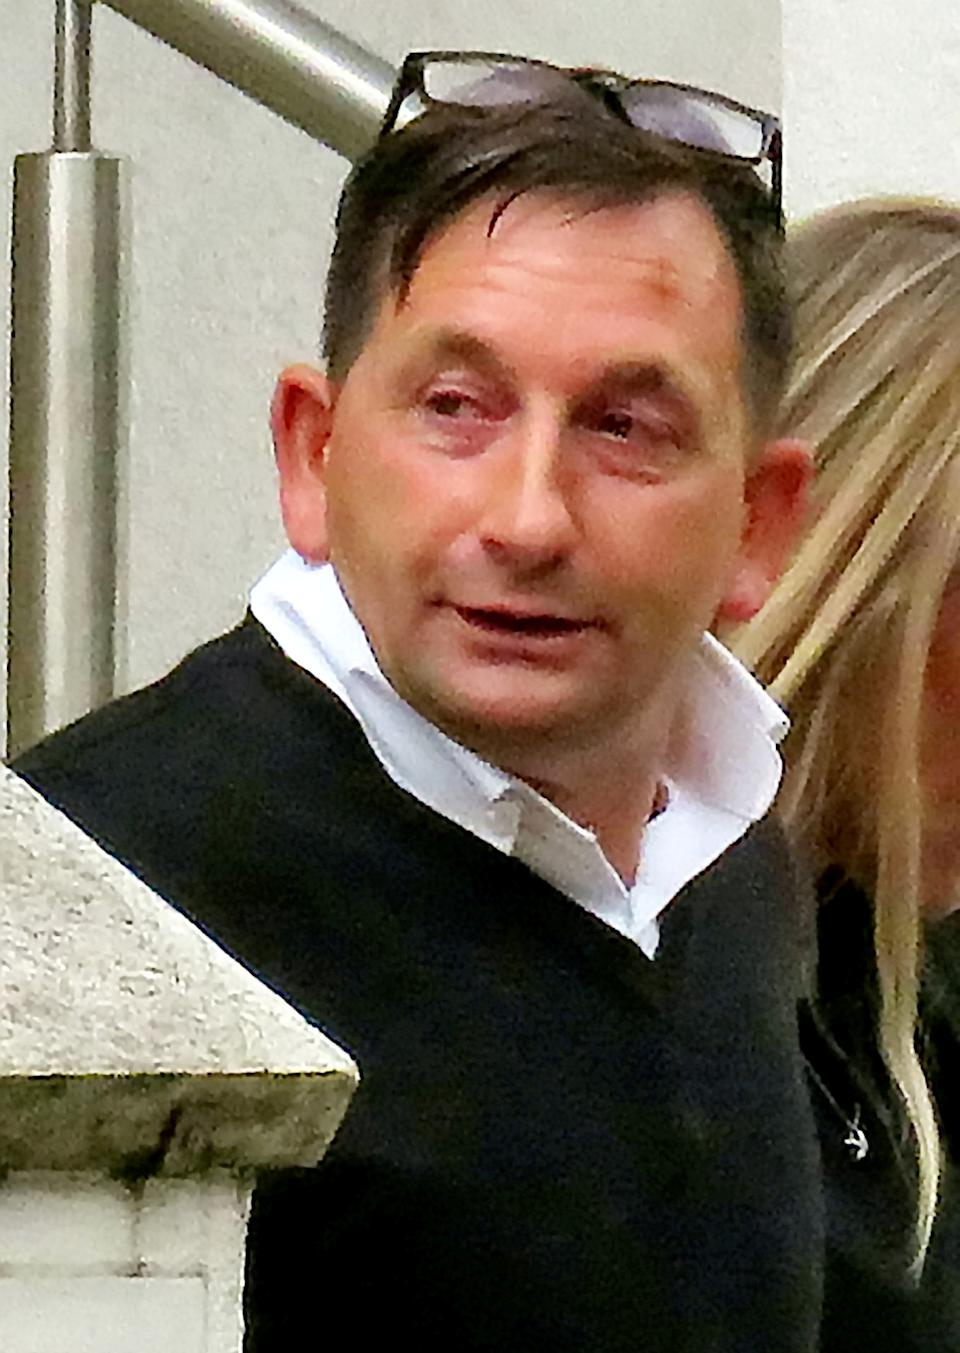 Stephen Wall was dumped by his partner of three-and-a-half years. (SWNS)